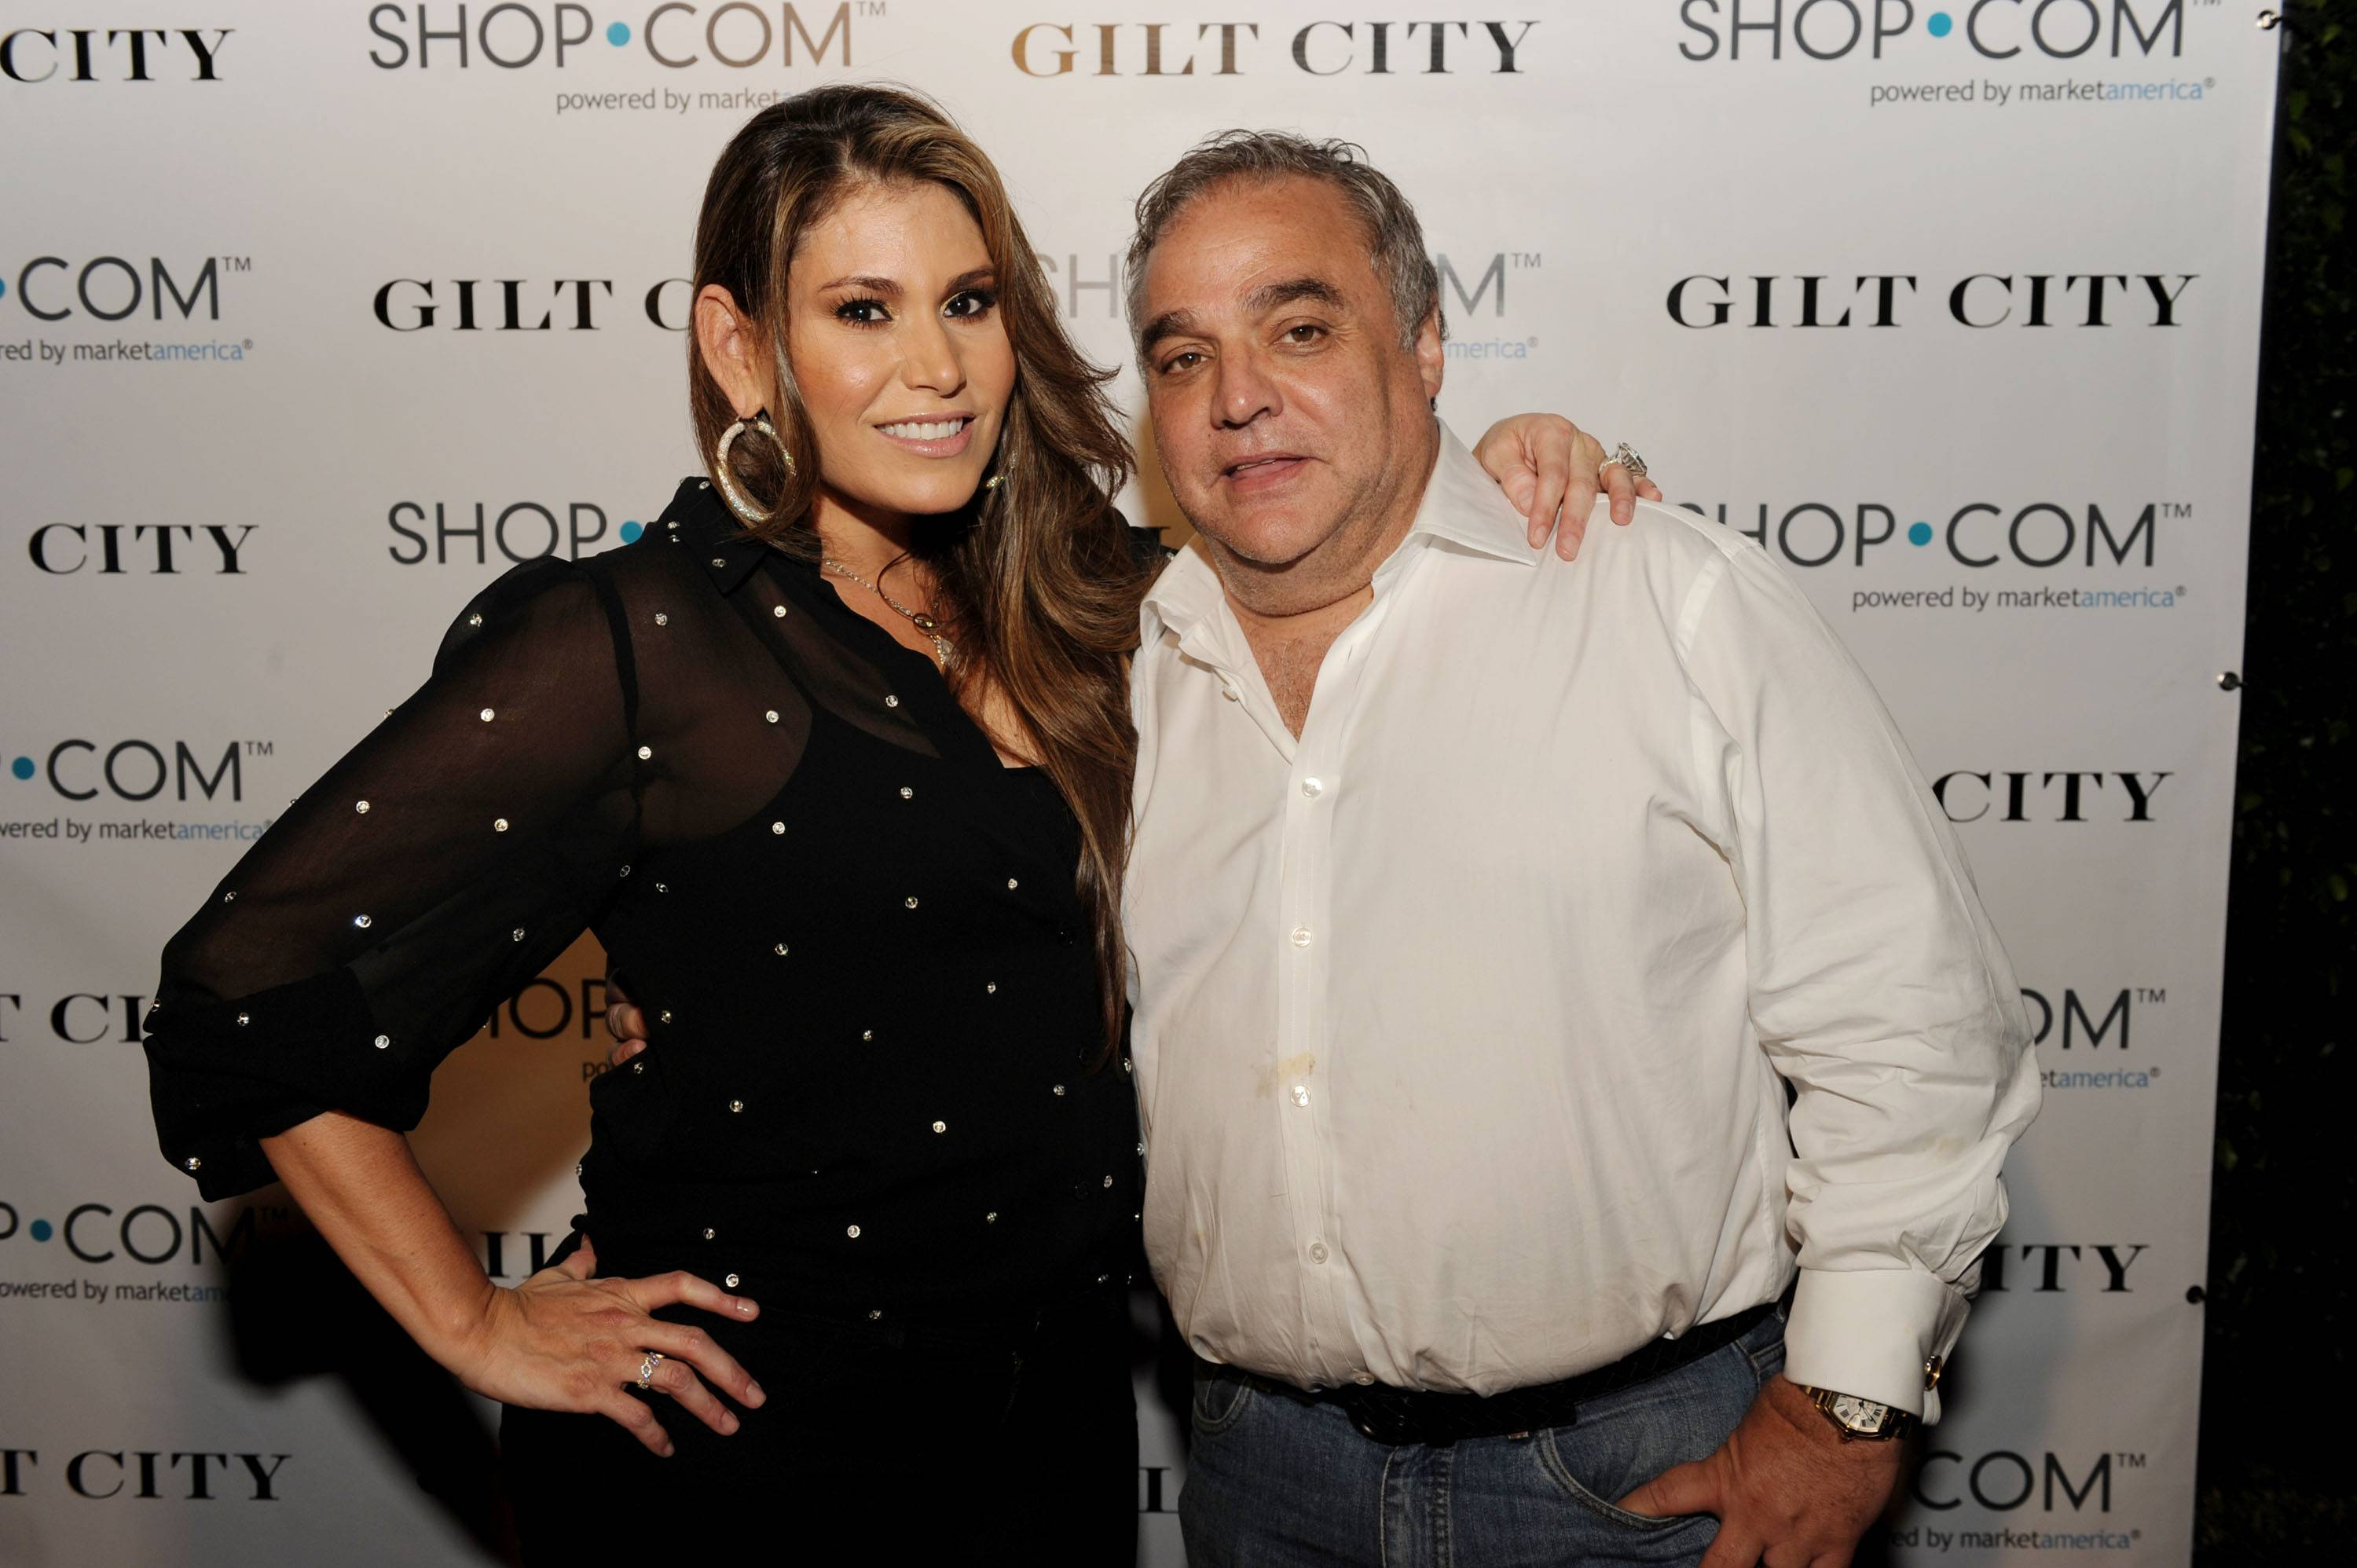 Loren Ridinger and fellow Gilt City Insider, Lee Schrager